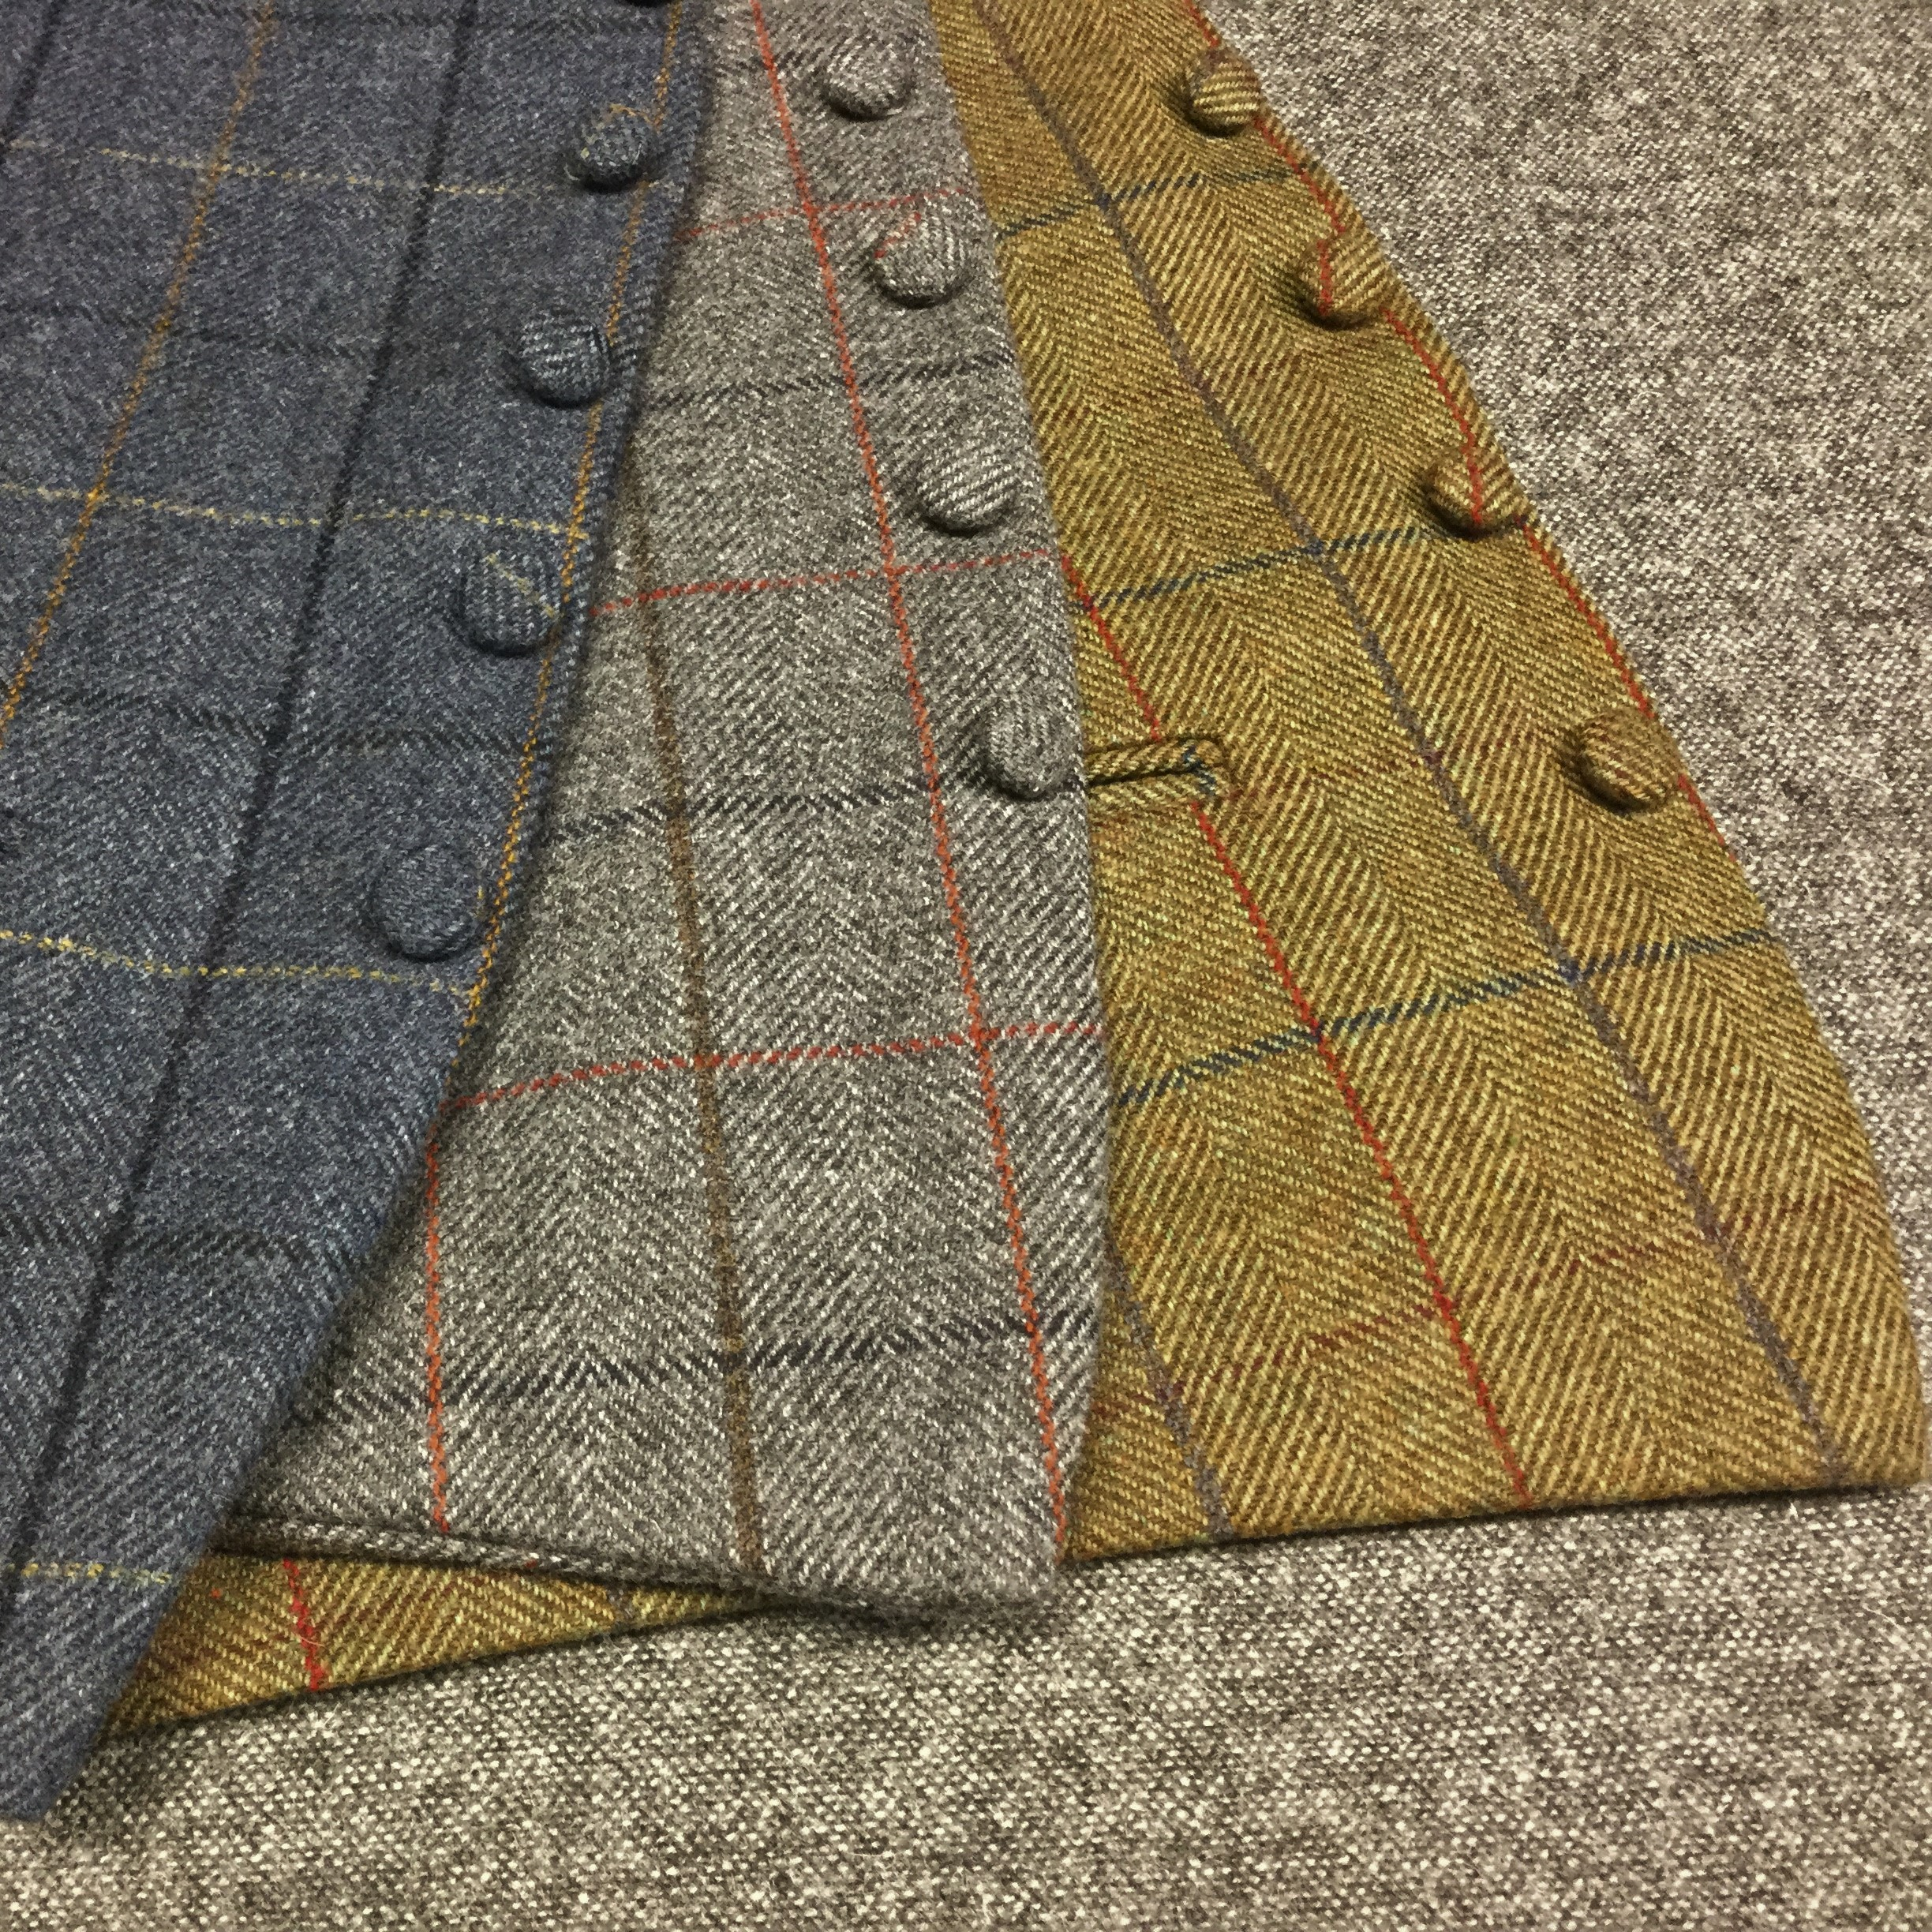 Check Tweed Waistcoats for Weddings in Blue, Grey and Green Check